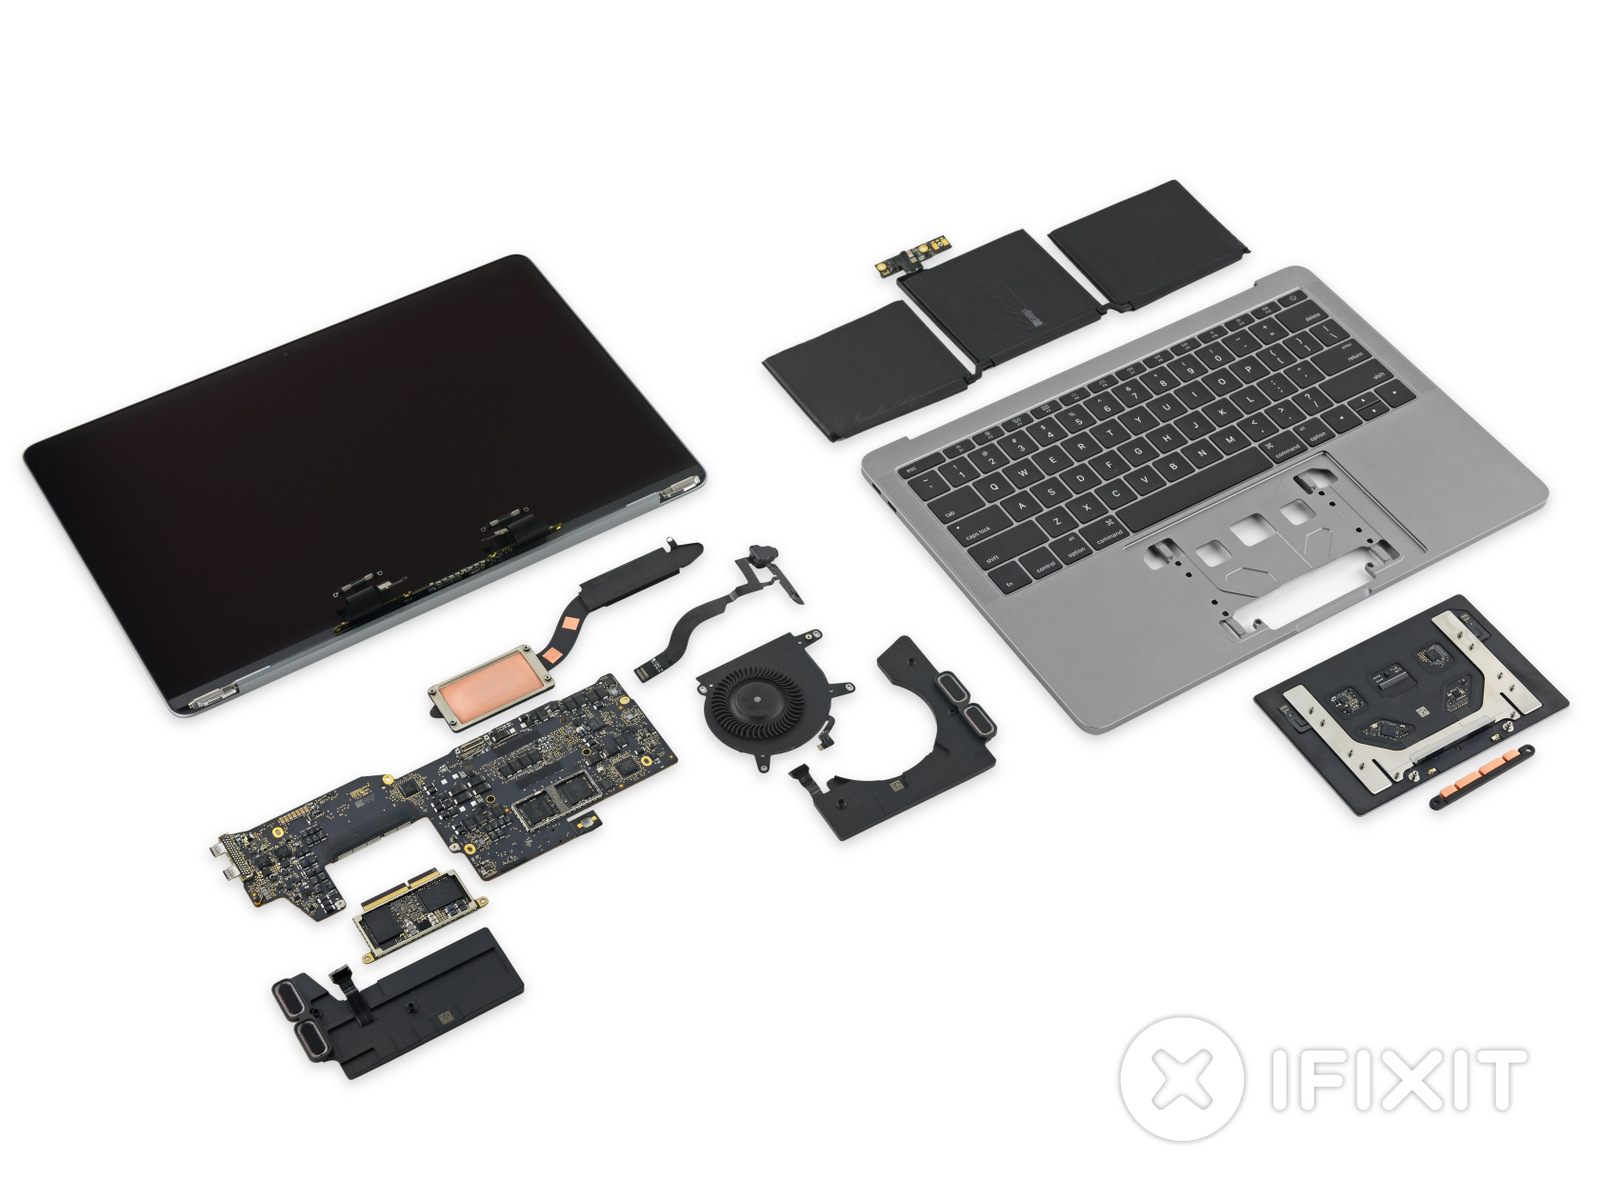 MacBook Pro 2016 No Touch Bar Teardown